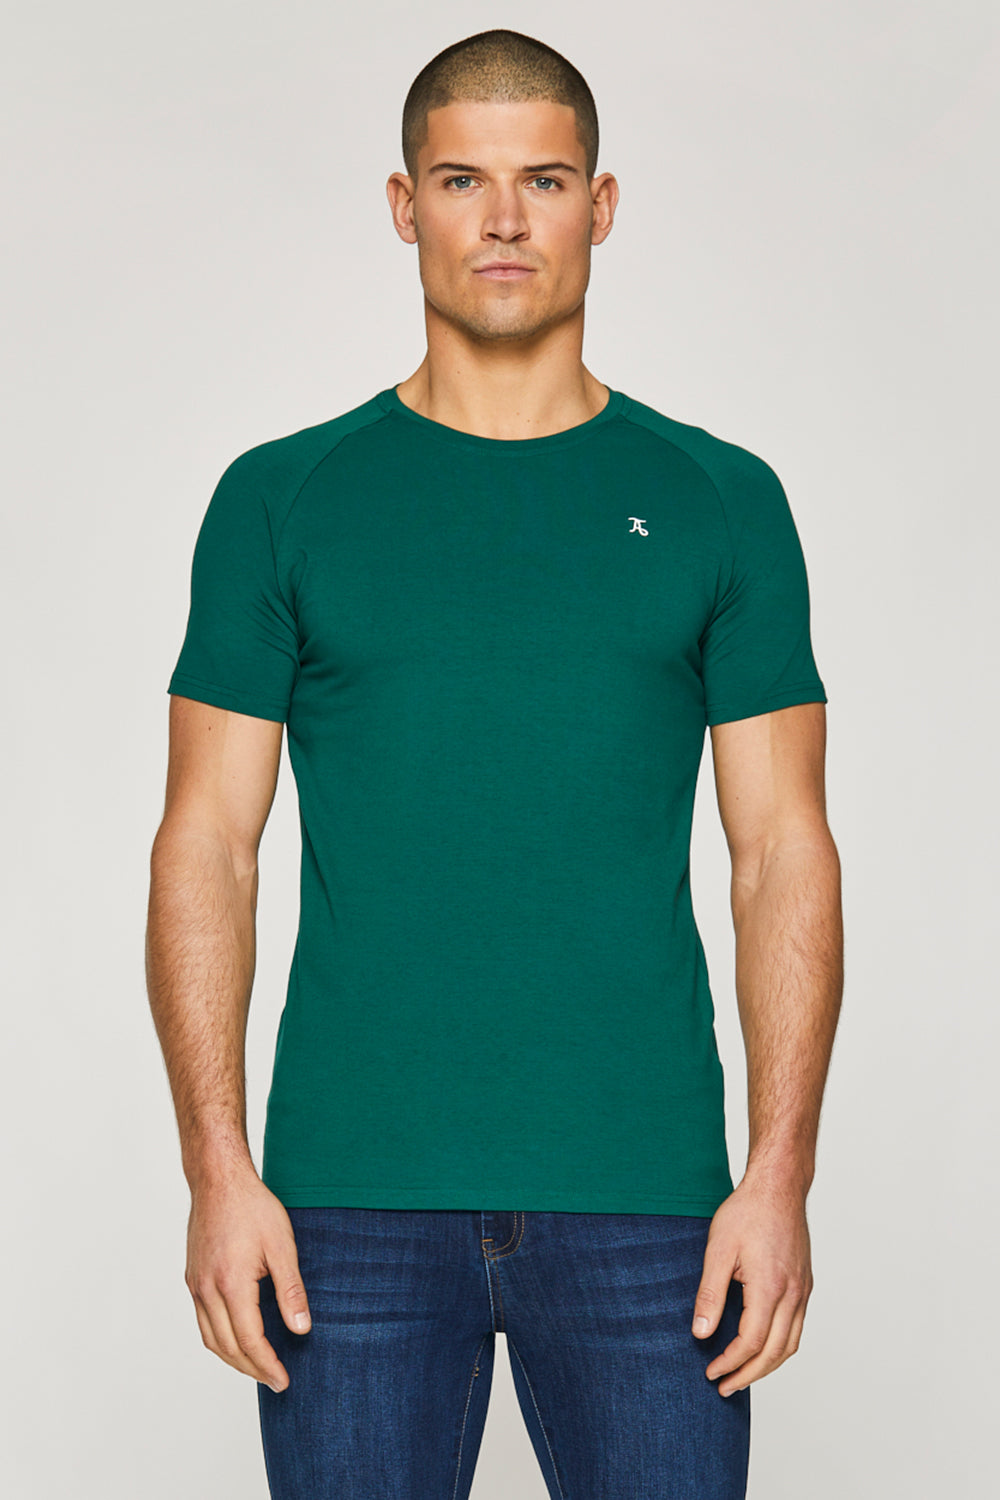 Essential T-Shirt in Oxidised Green